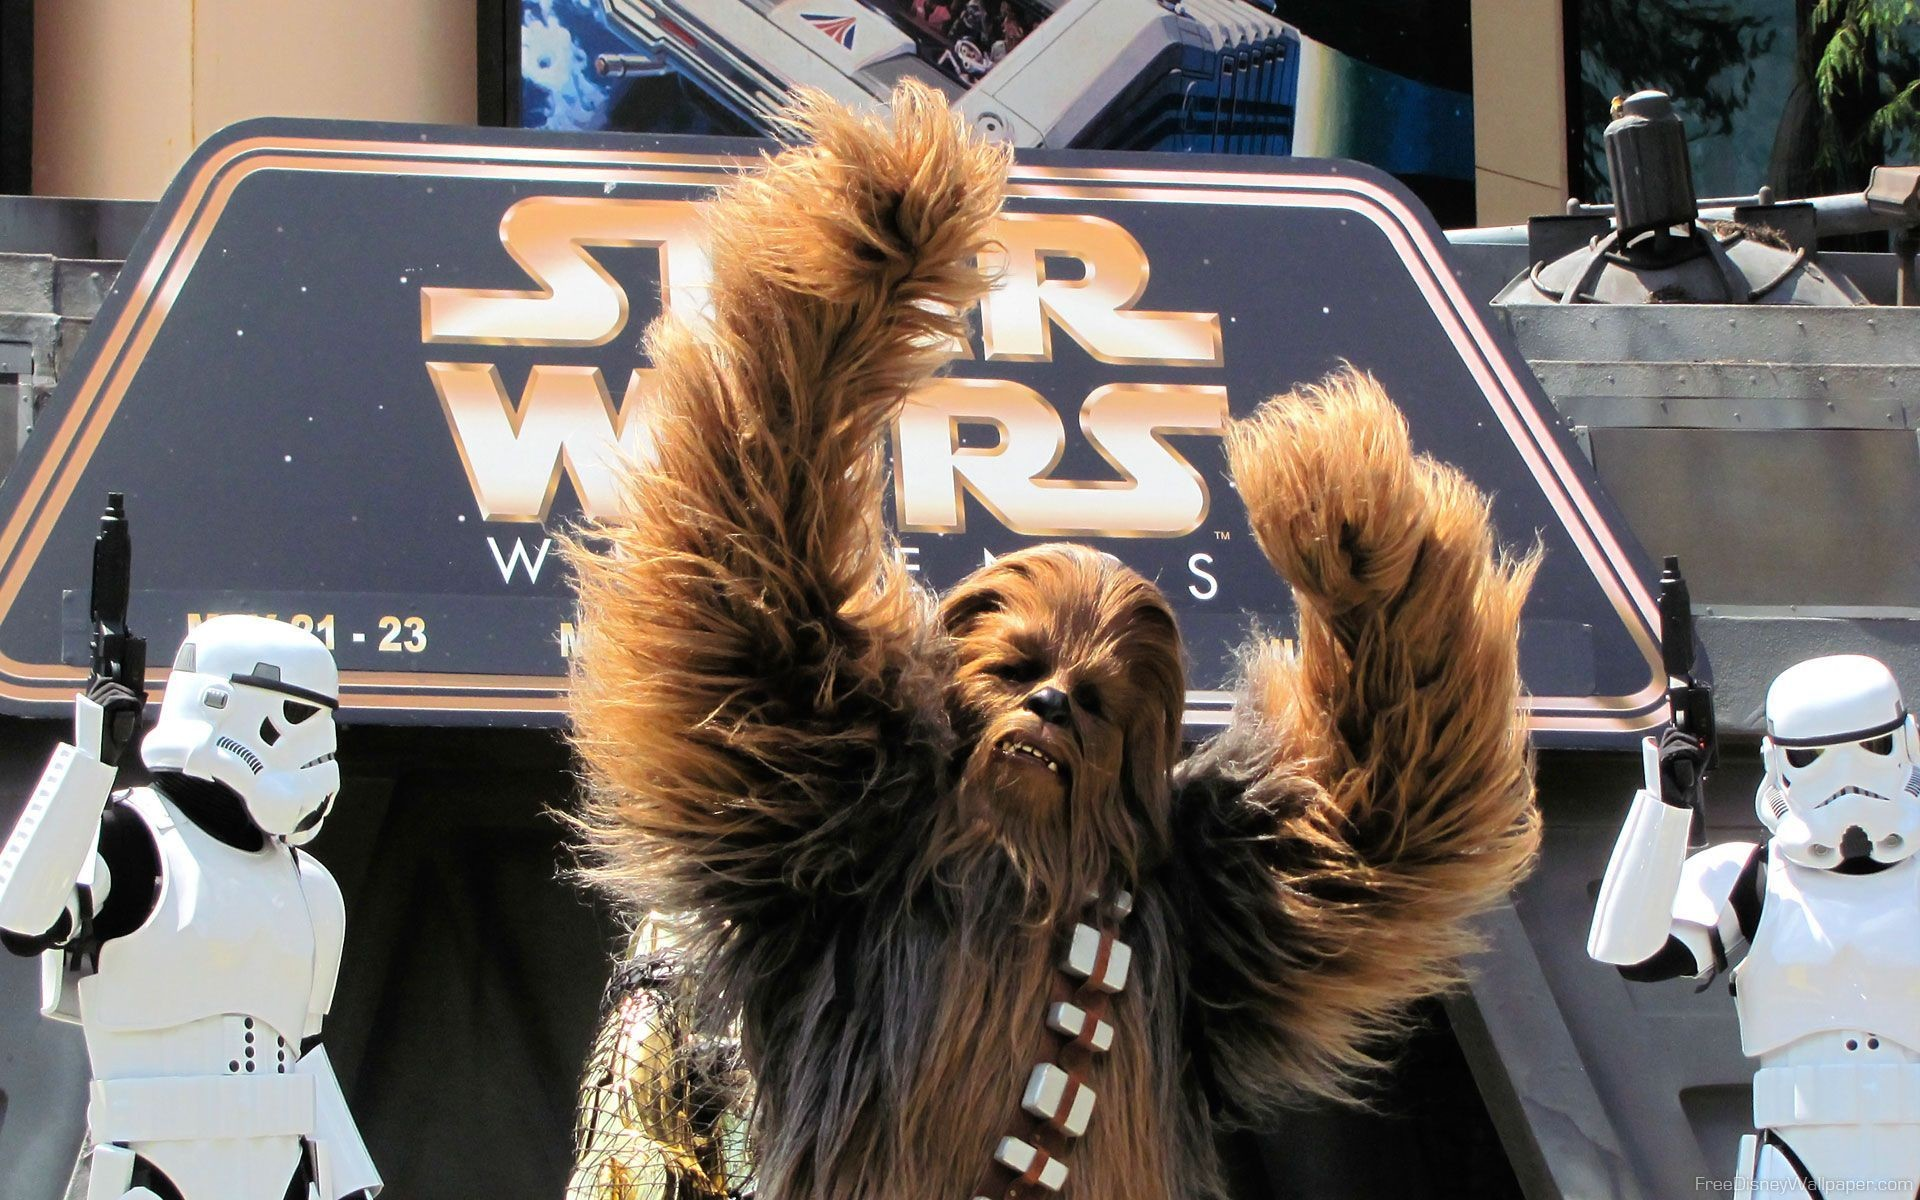 1920x1200 Chewbacca Wallpapers in Best  px Resolutions